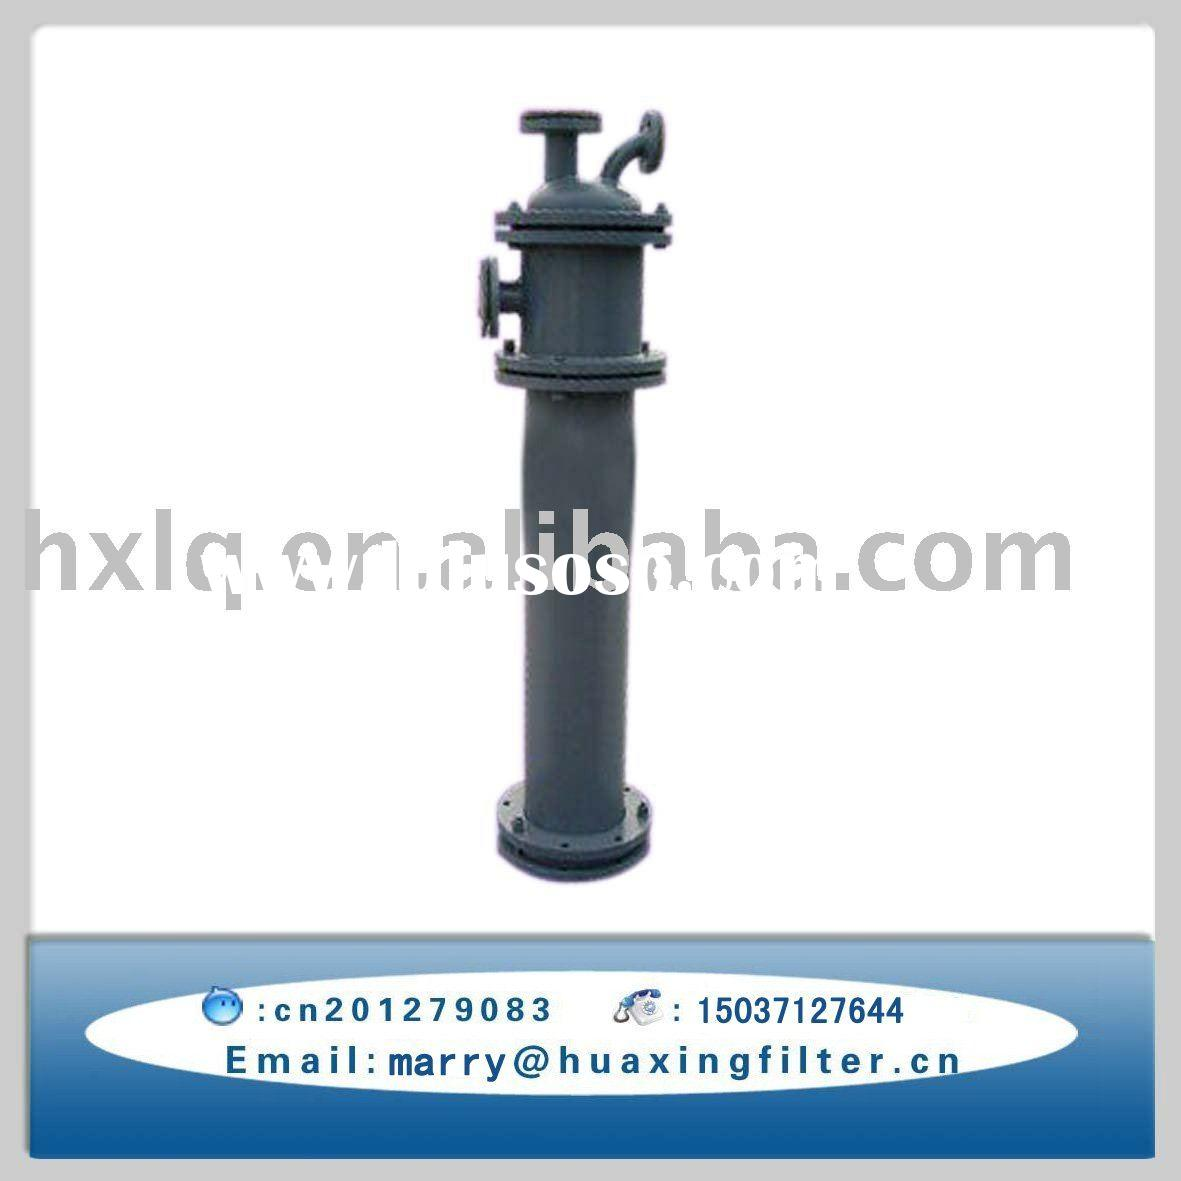 Hydrochloric Acid Filter